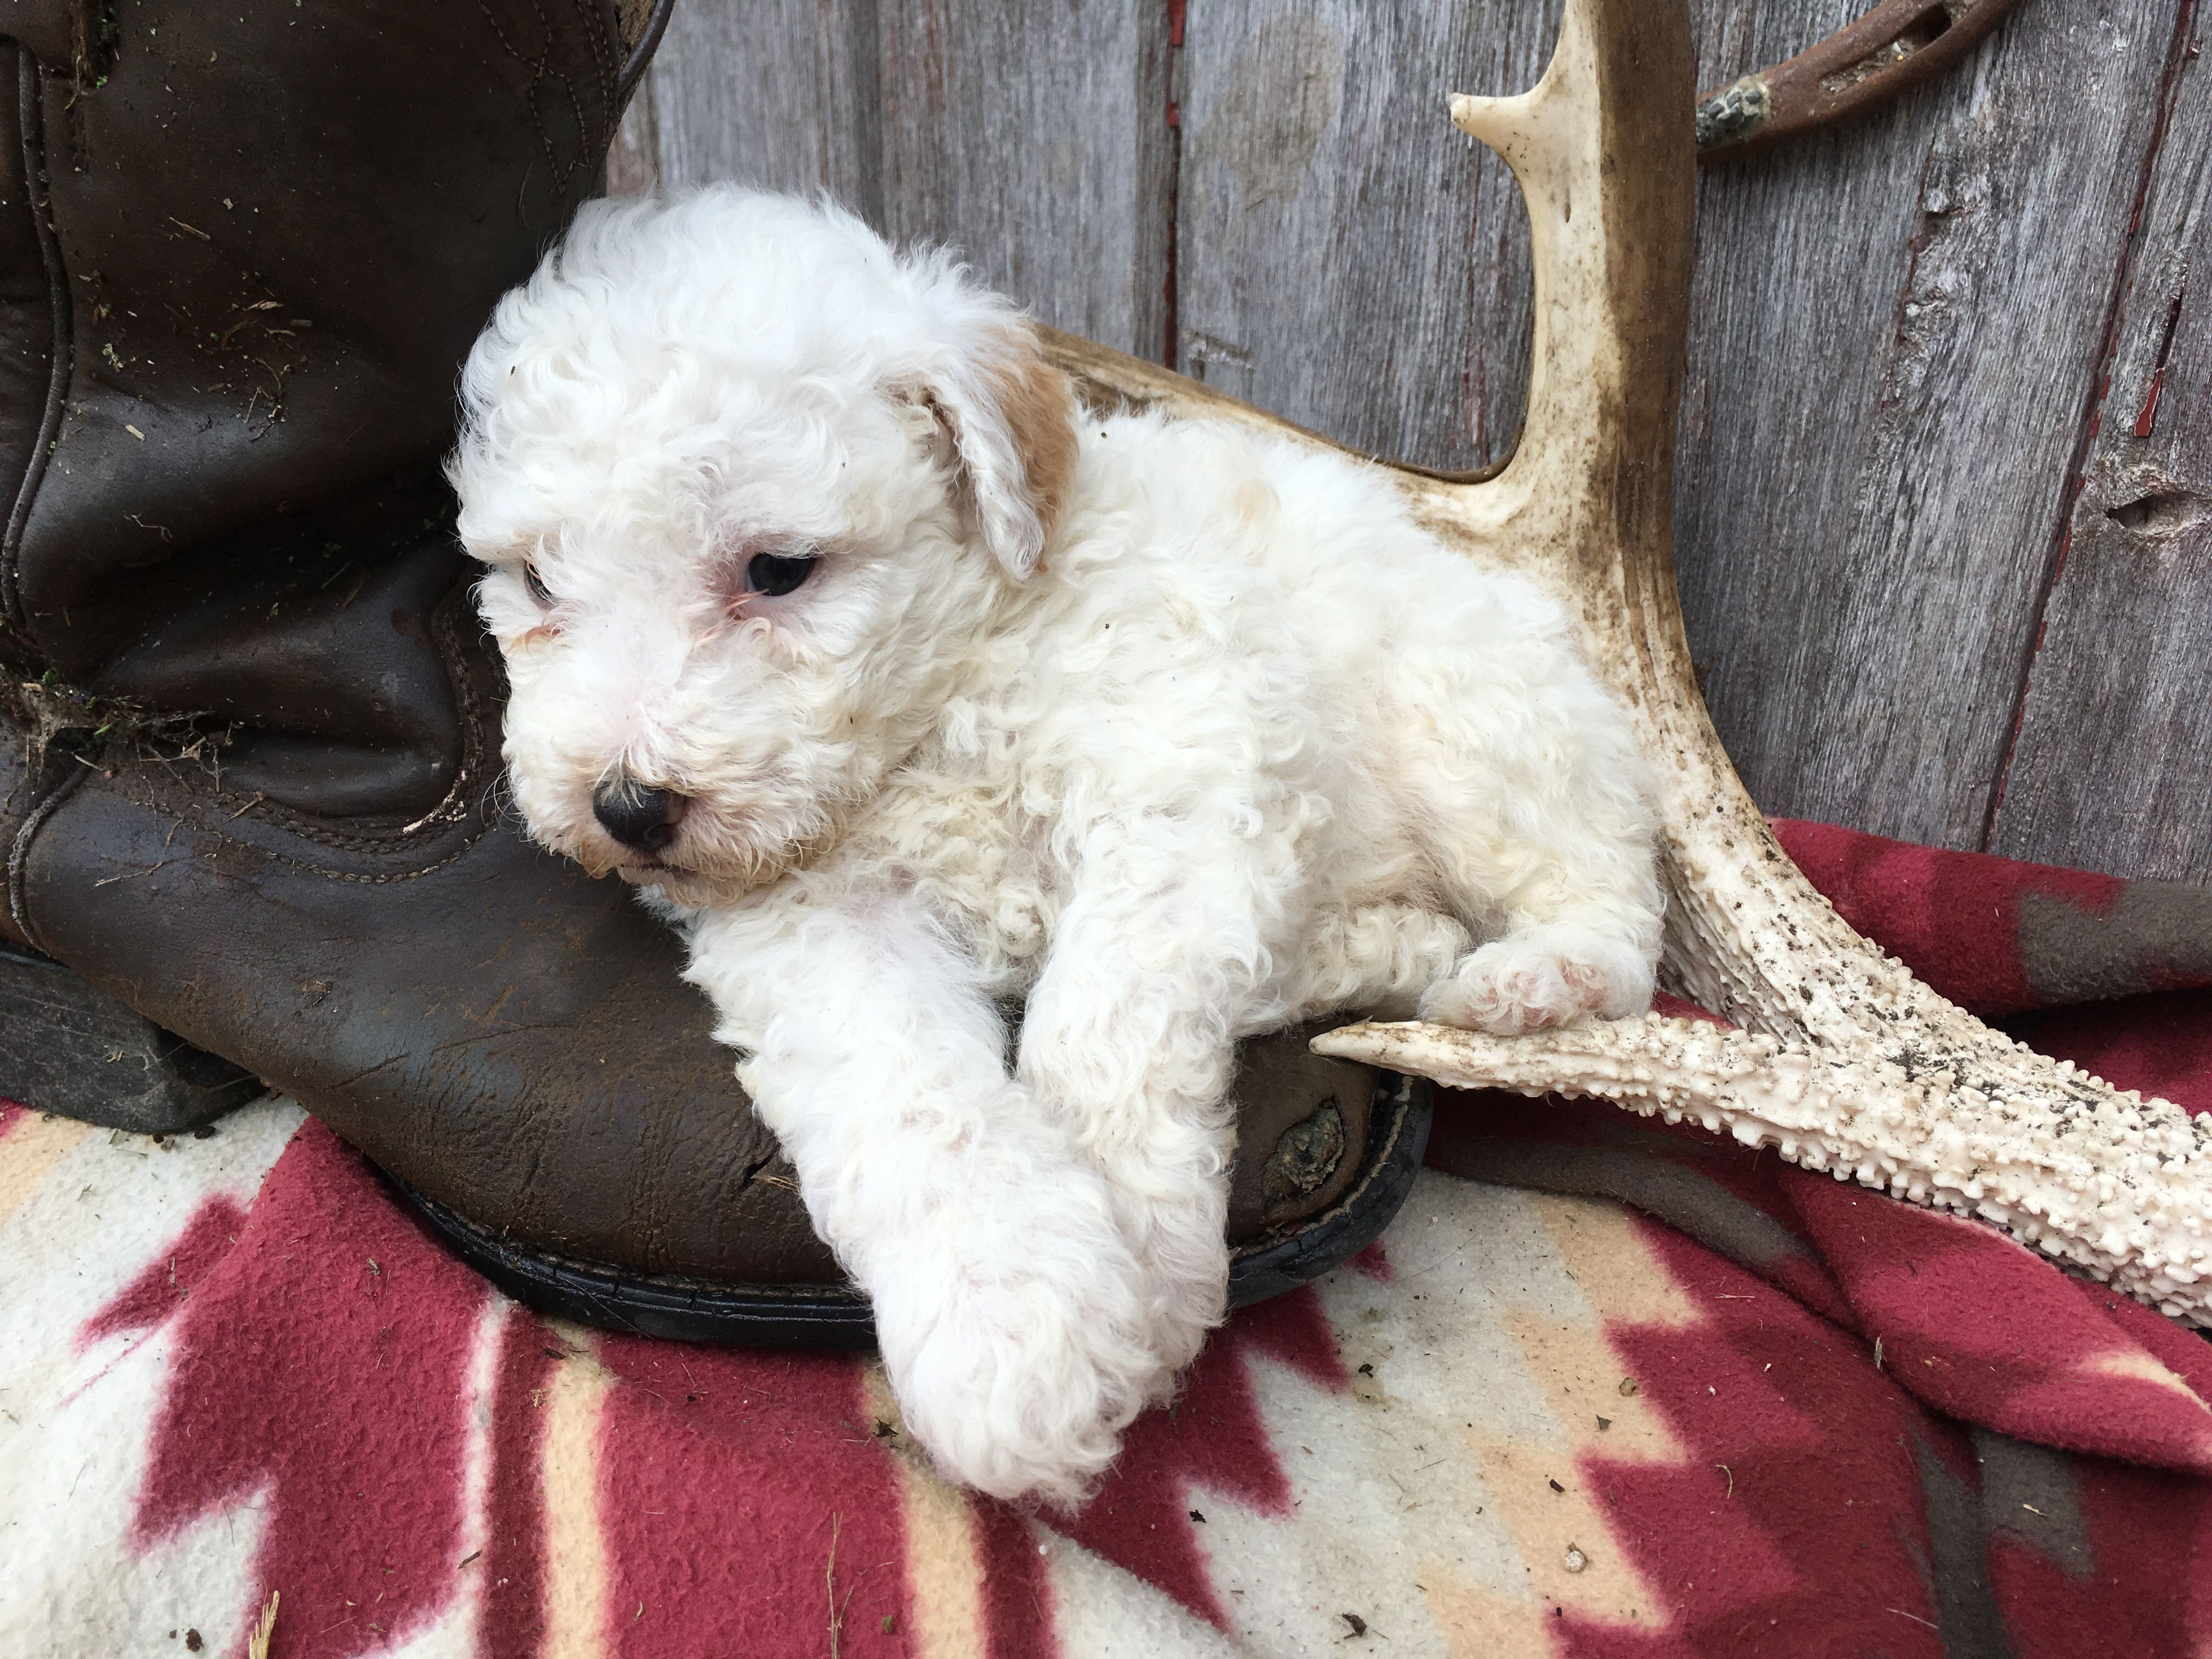 Bently Male Sheepadoodle Puppy For Sale Lamoni Iowa Sheepadoodle Puppy Puppies For Sale Funny Cat Gifts